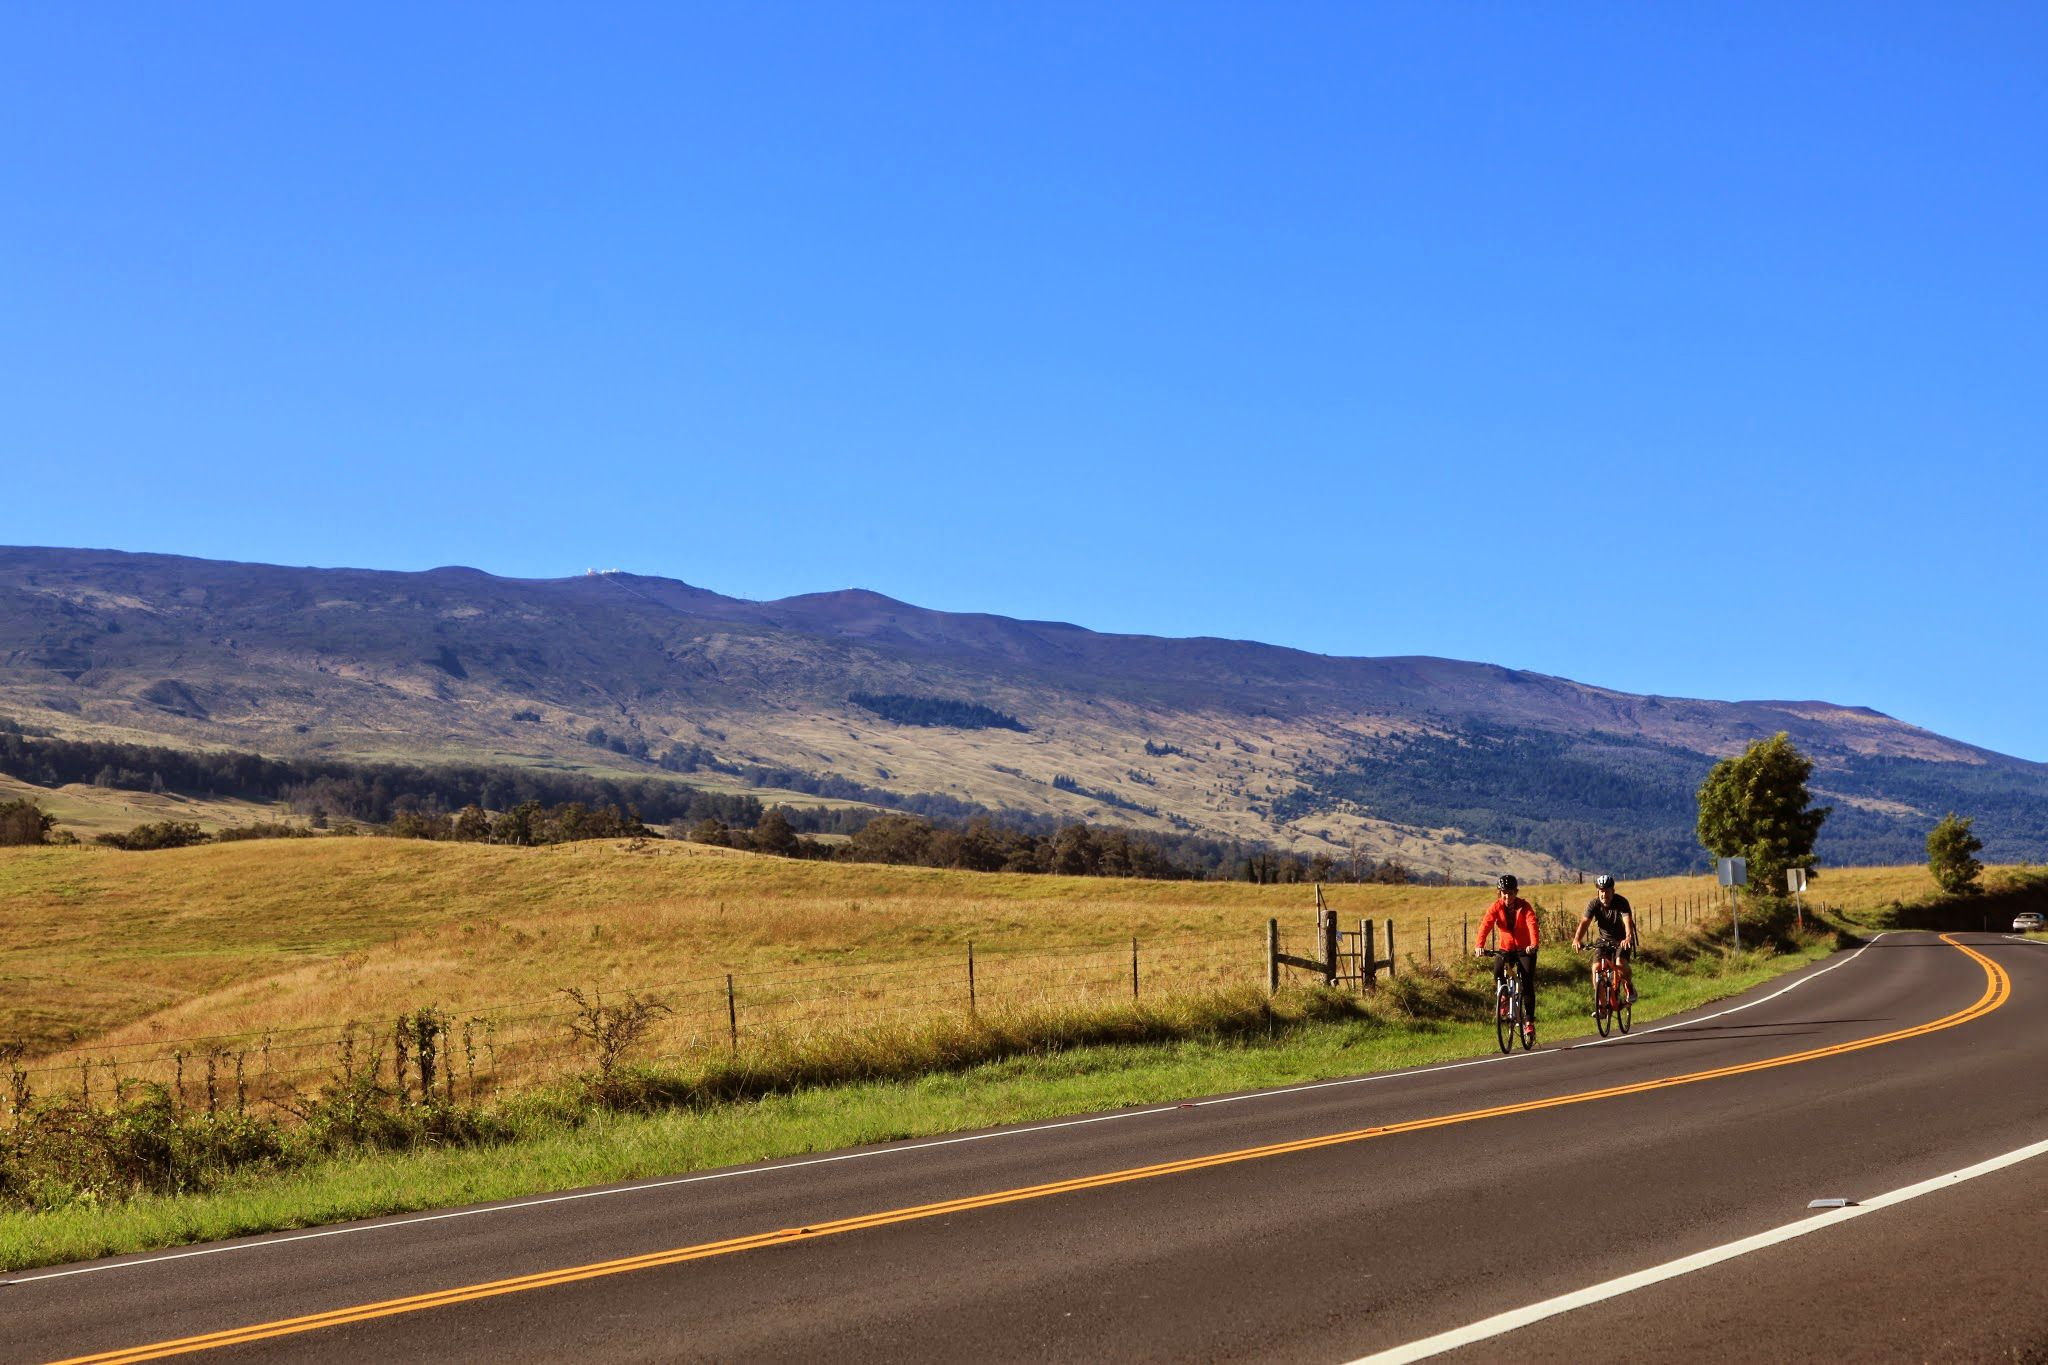 How a Self-Paced Haleakala Bike Tour Compares to Guided Tours